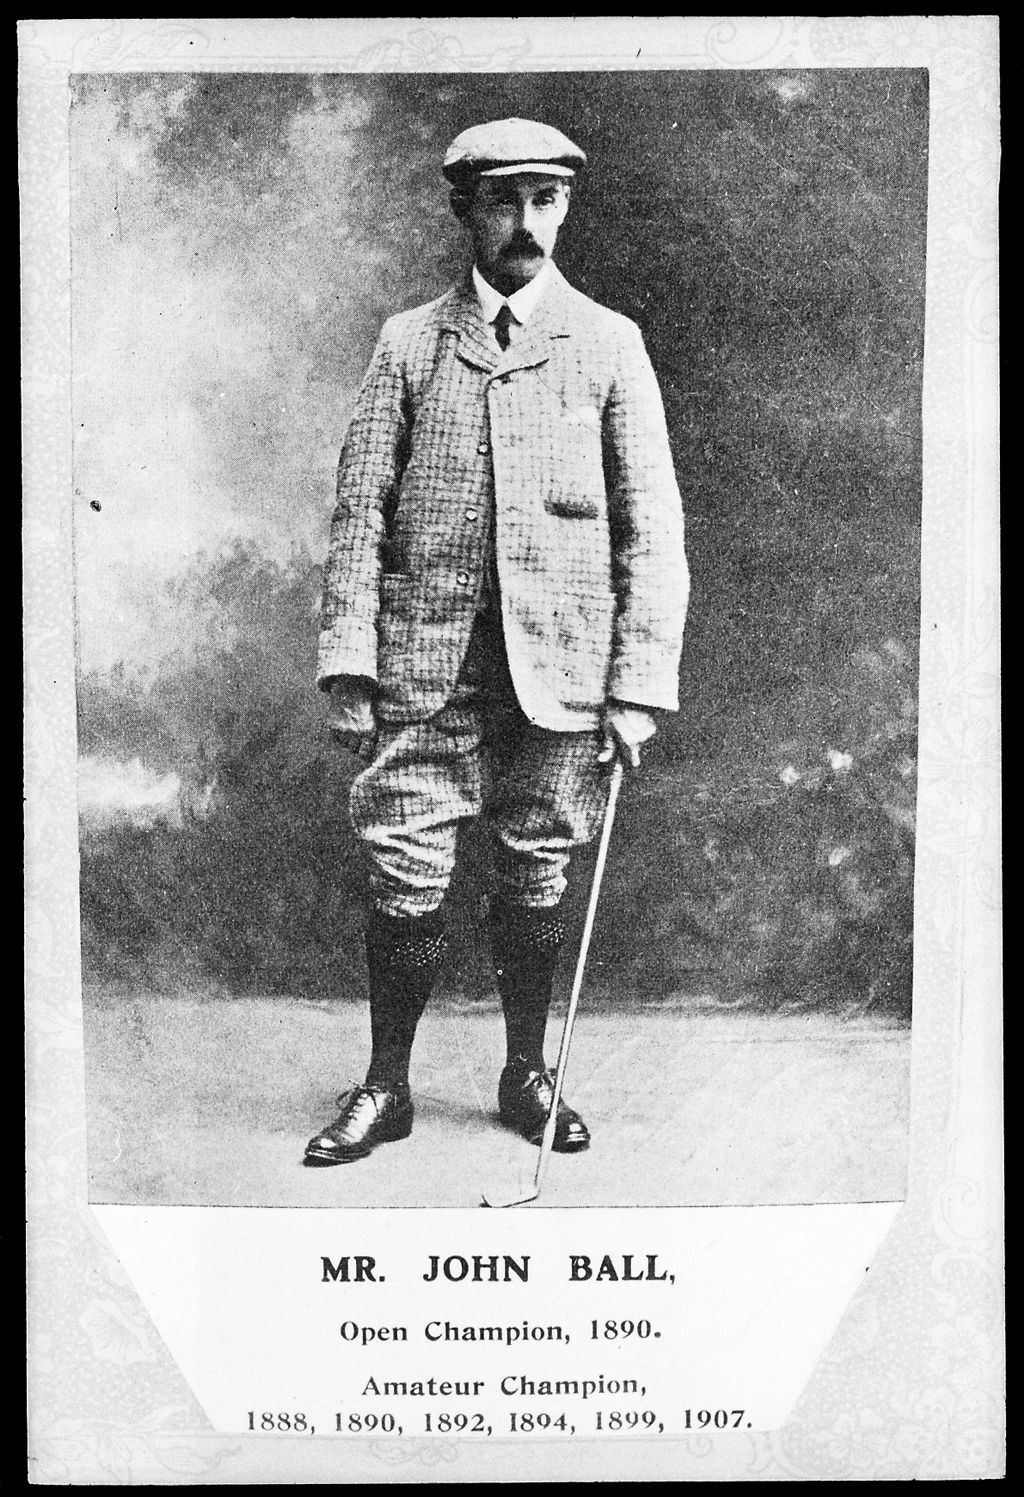 [Portrait of Golfer John Ball, ca. 1890's]